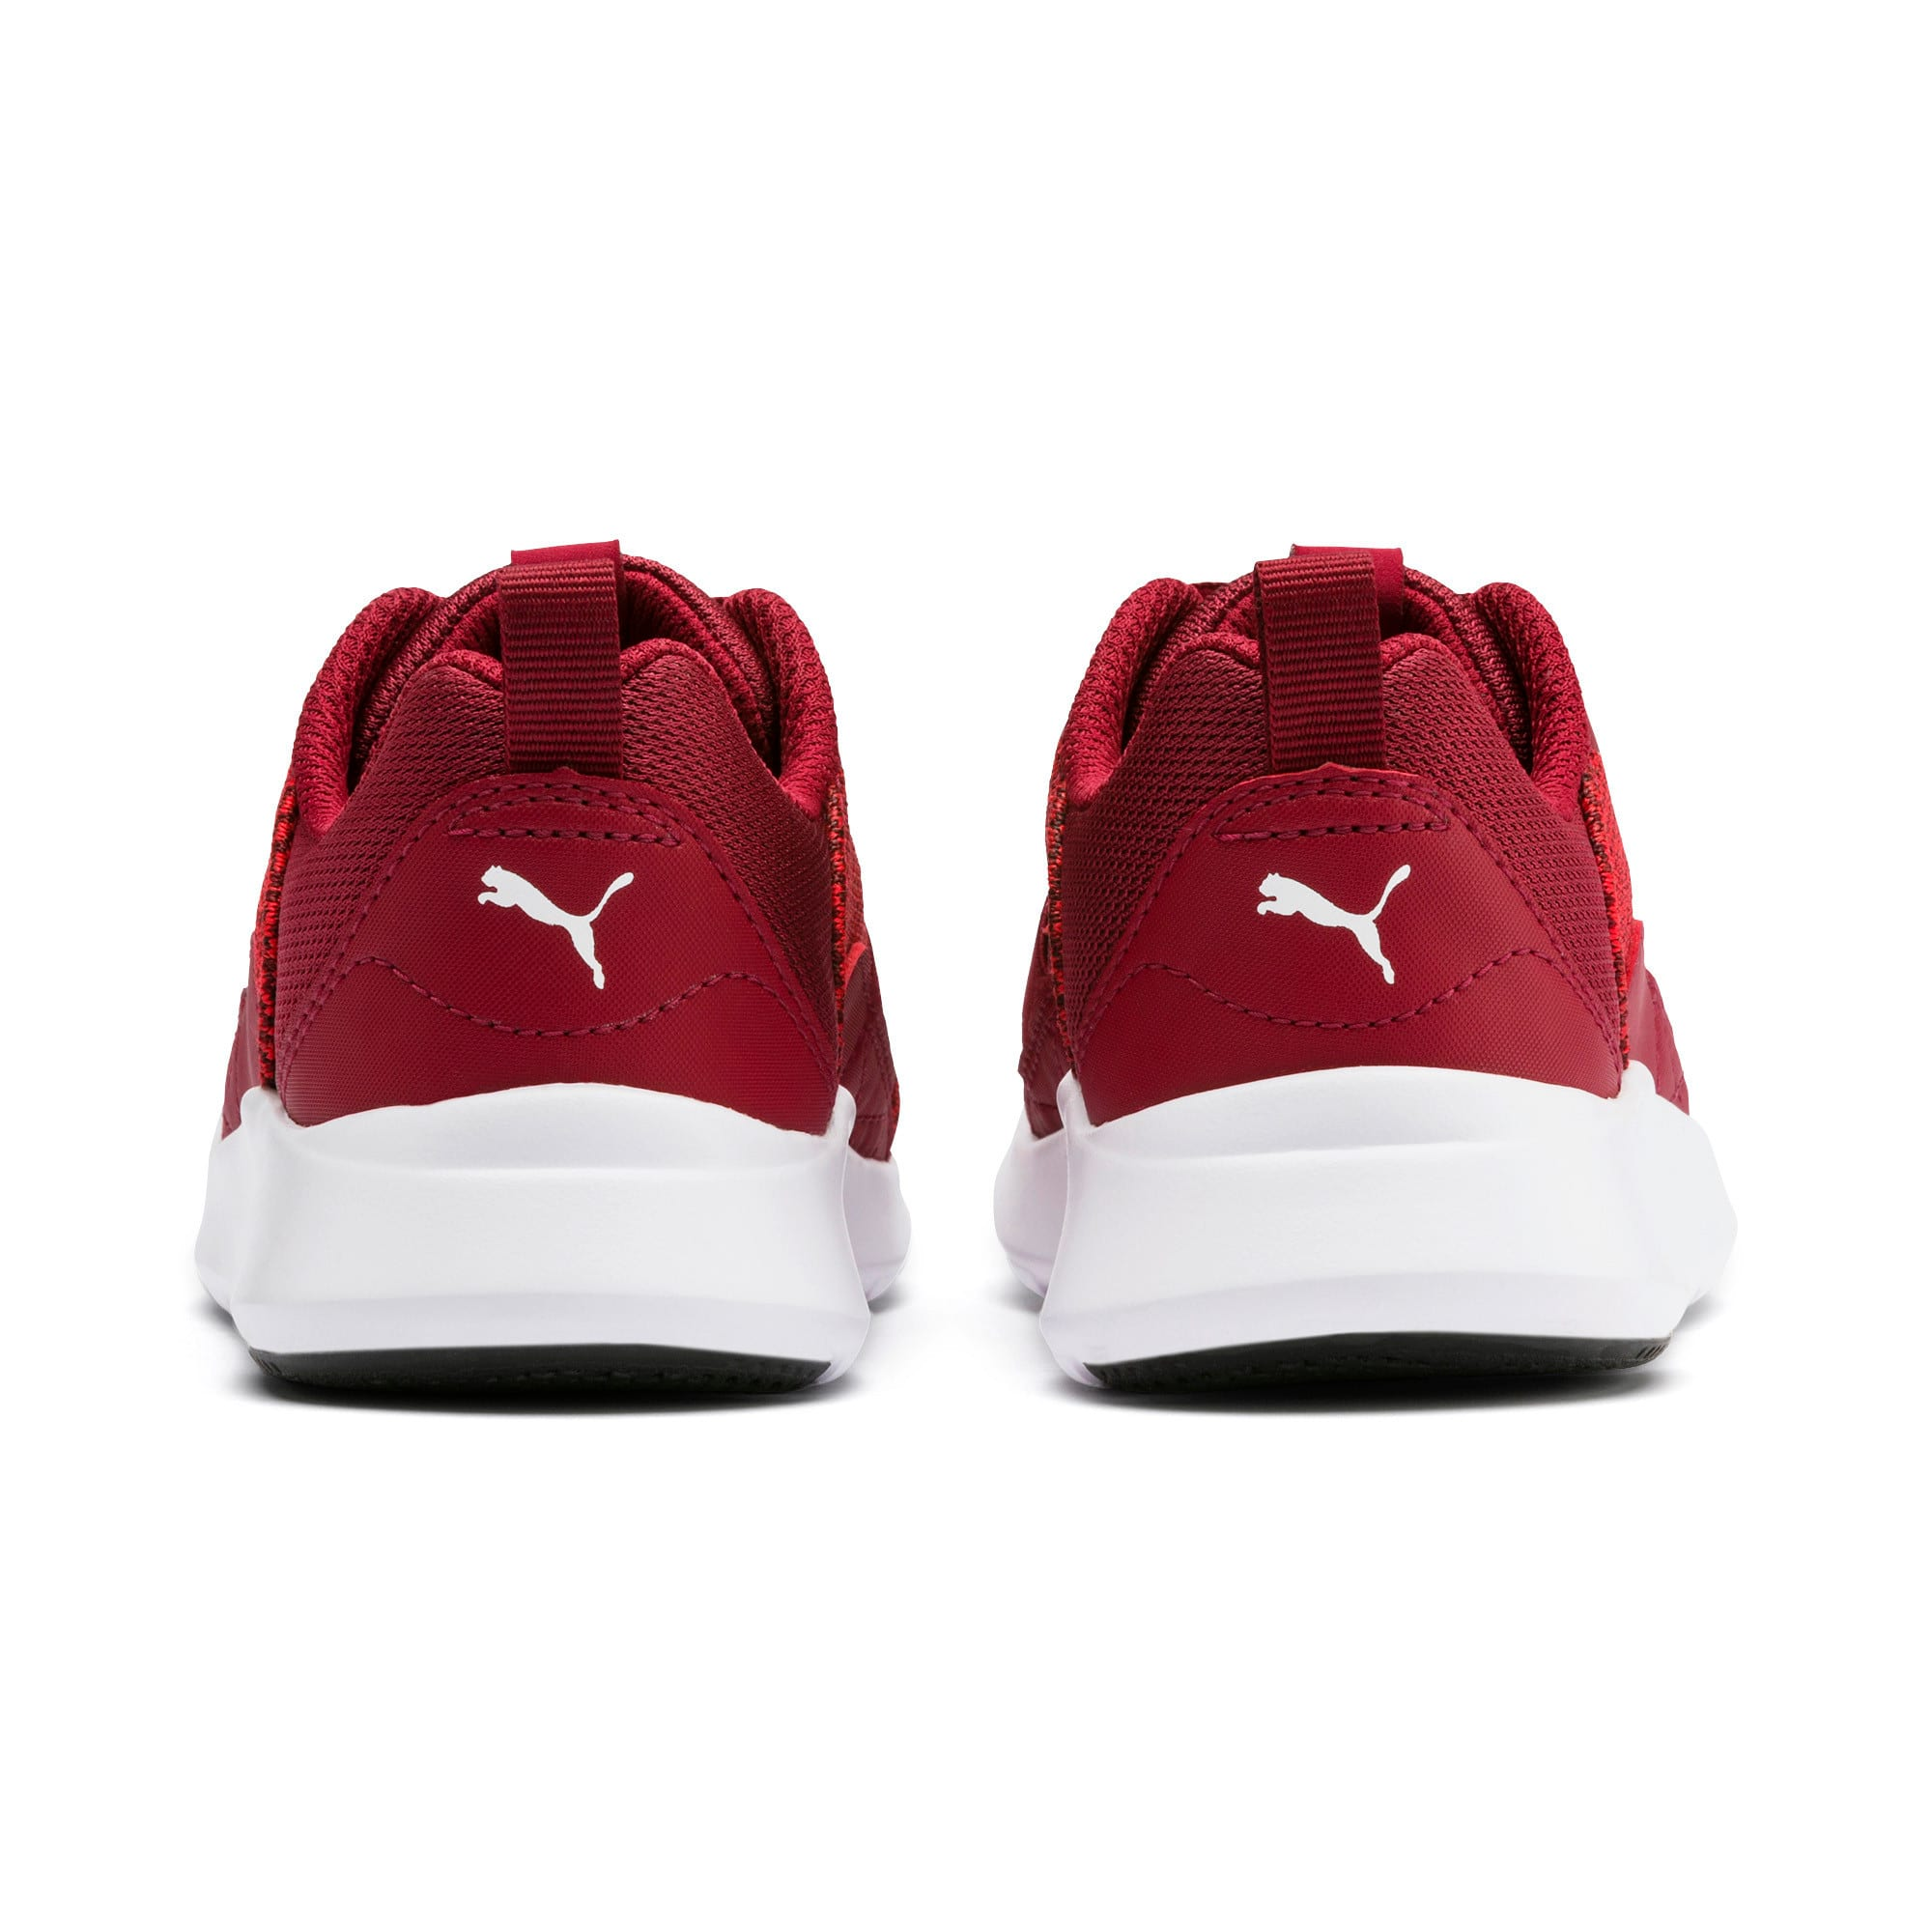 Thumbnail 4 of Wired Knit Kids' Trainers, Rhubarb-Puma White, medium-IND